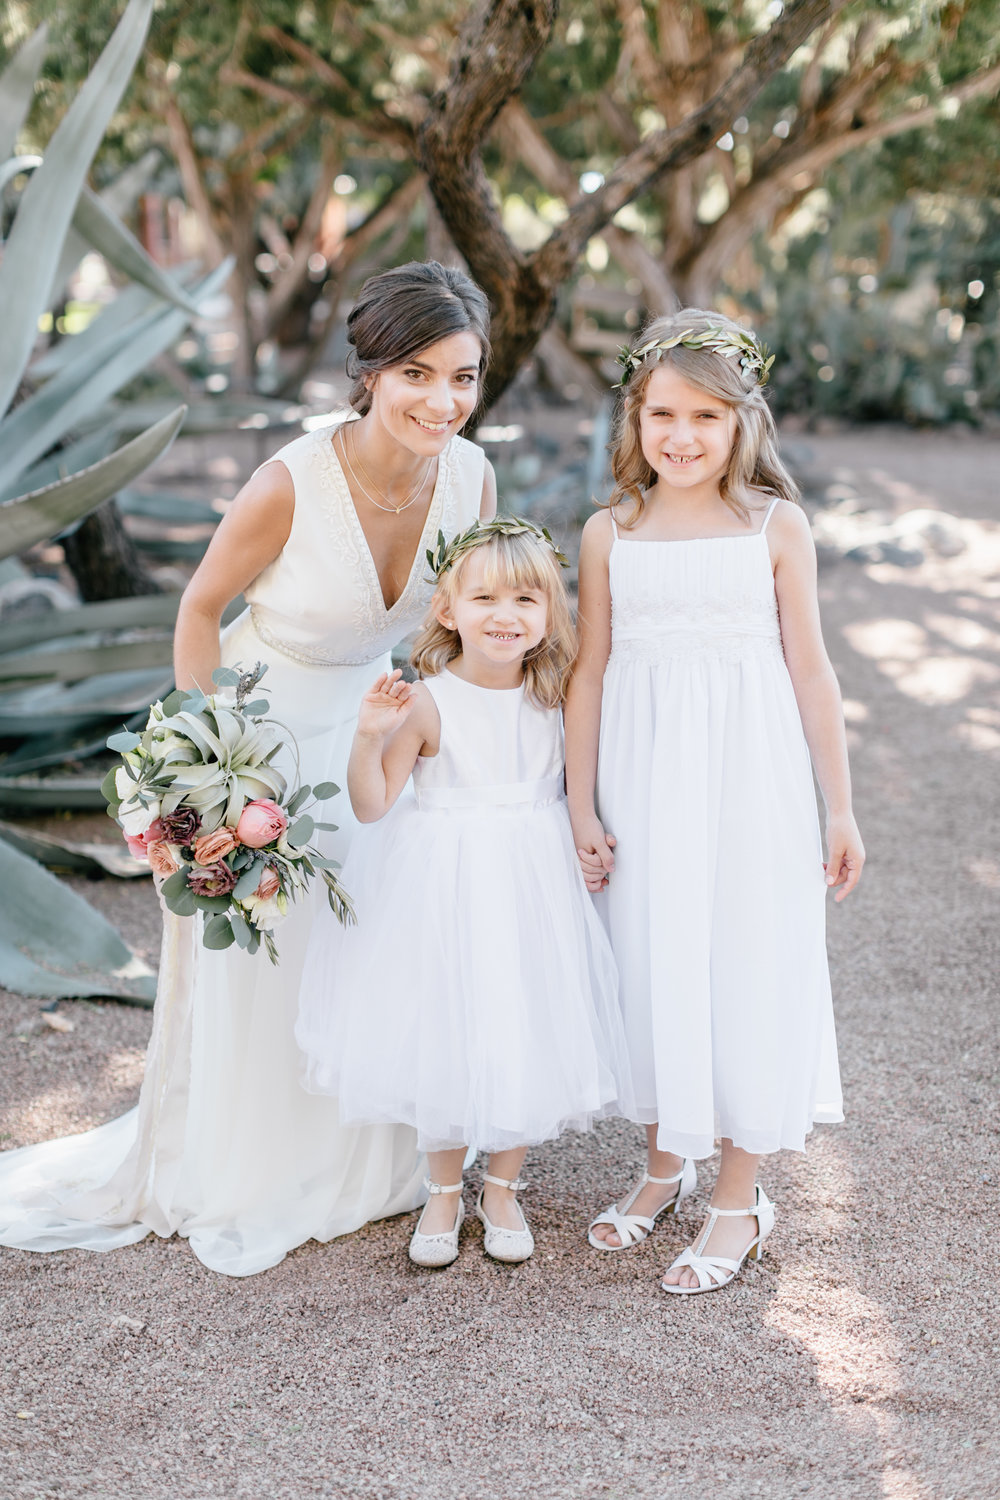 An Intimate Sedona Wedding Nestled in the Arizona Red Rocks  - Tremaine Ranch - AZ Arizona Wedding & Event, Vintage, Furniture, Tableware, & Specialty Rentals in Phoenix, Tucson, Flagstaff, Sedona, Tempe, Chandler, Mesa, Gilbert, Prescott, Payson 5131.jpg